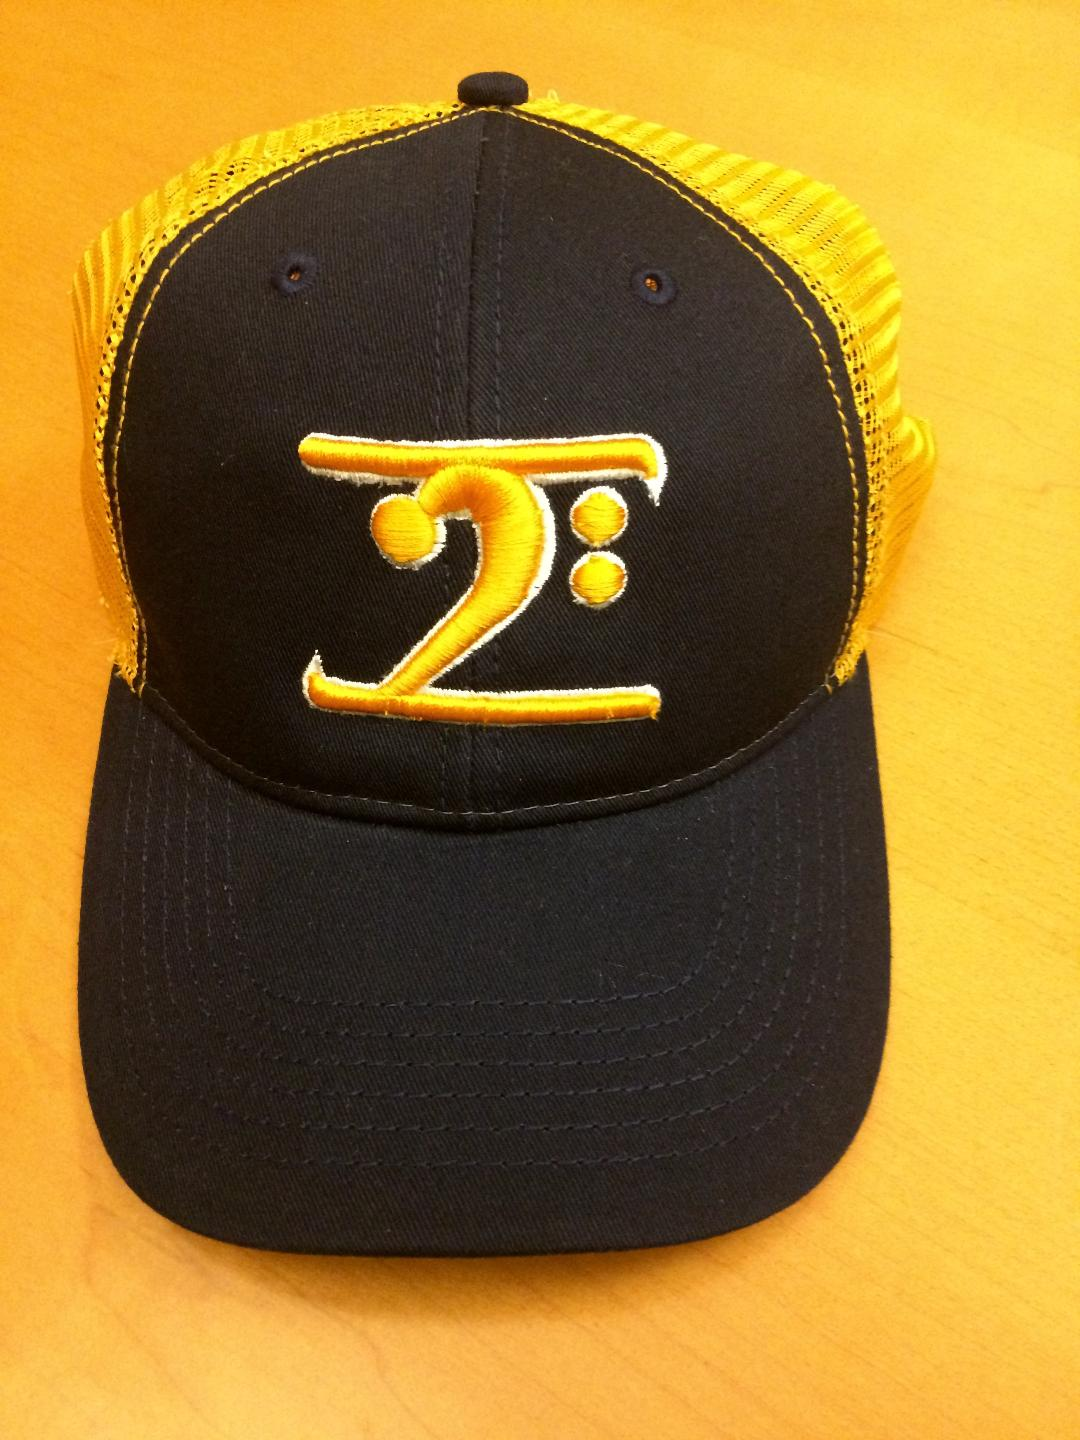 BLACK TRUCKER LOGO CAP - GOLD LOGO WHITE TRIM - Lathon Bass Wear